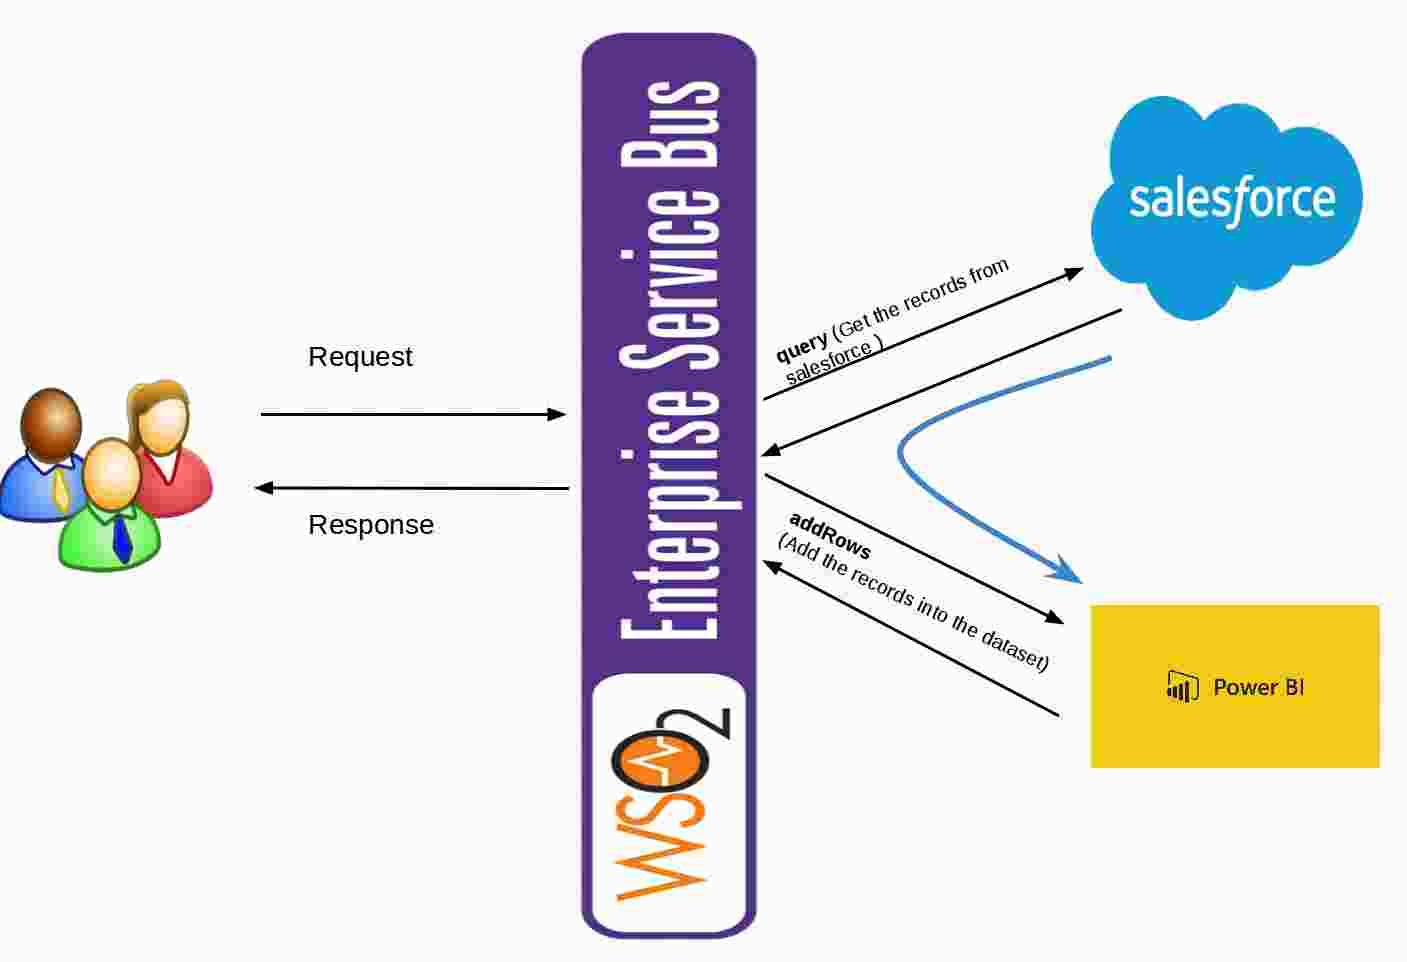 Sample Business Scenario for Salesforce - WSO2 ESB